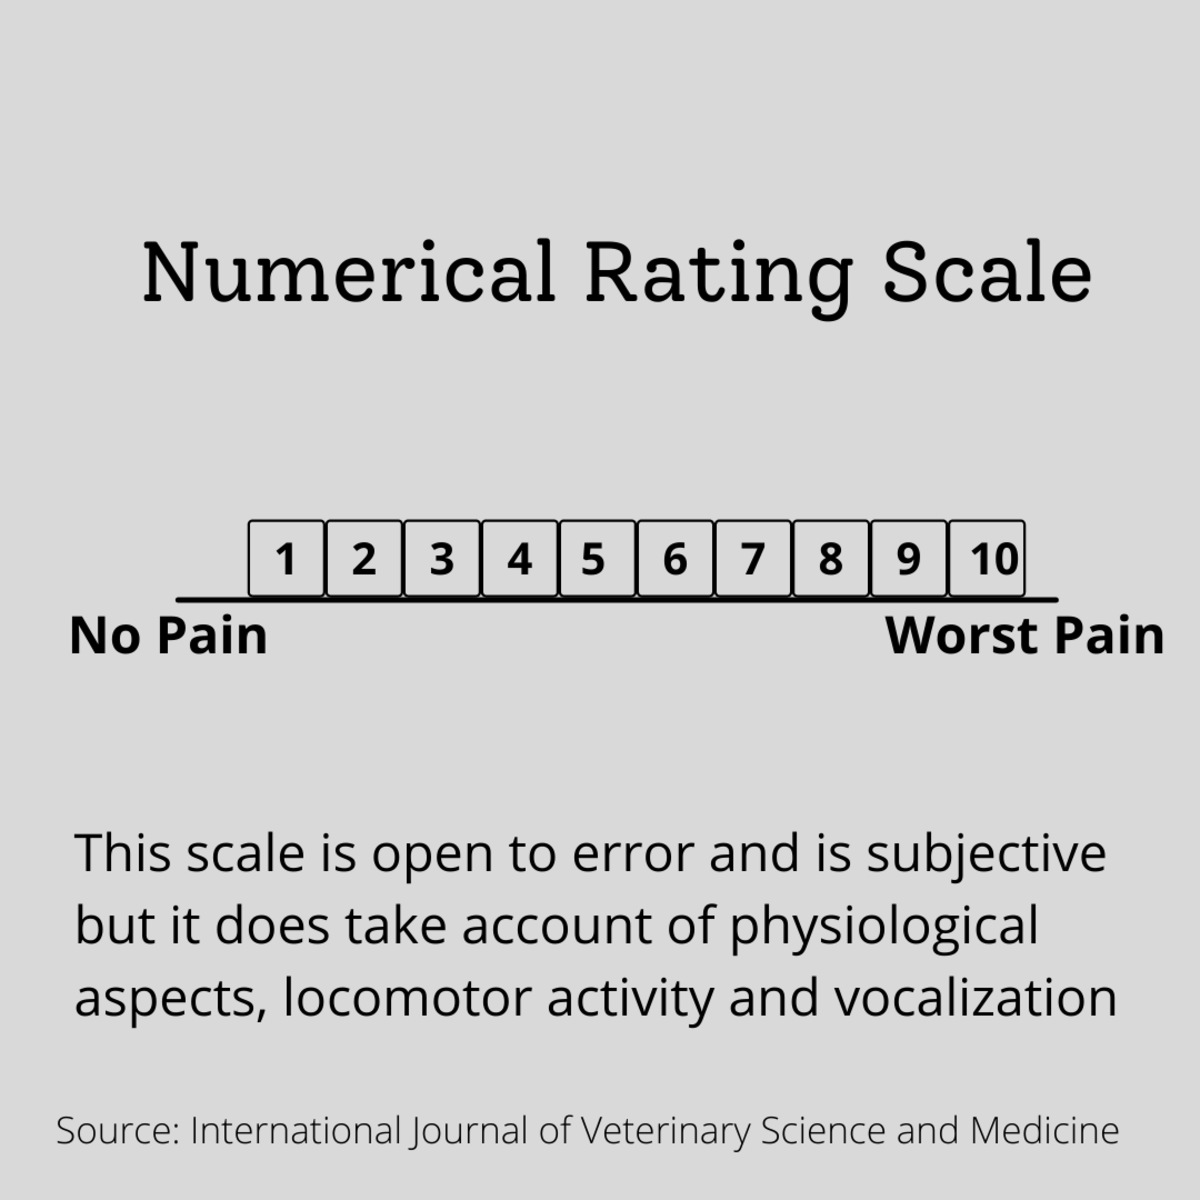 The Numerical rating scale assigns numbers to identify the level of pain the cat is experiencing.